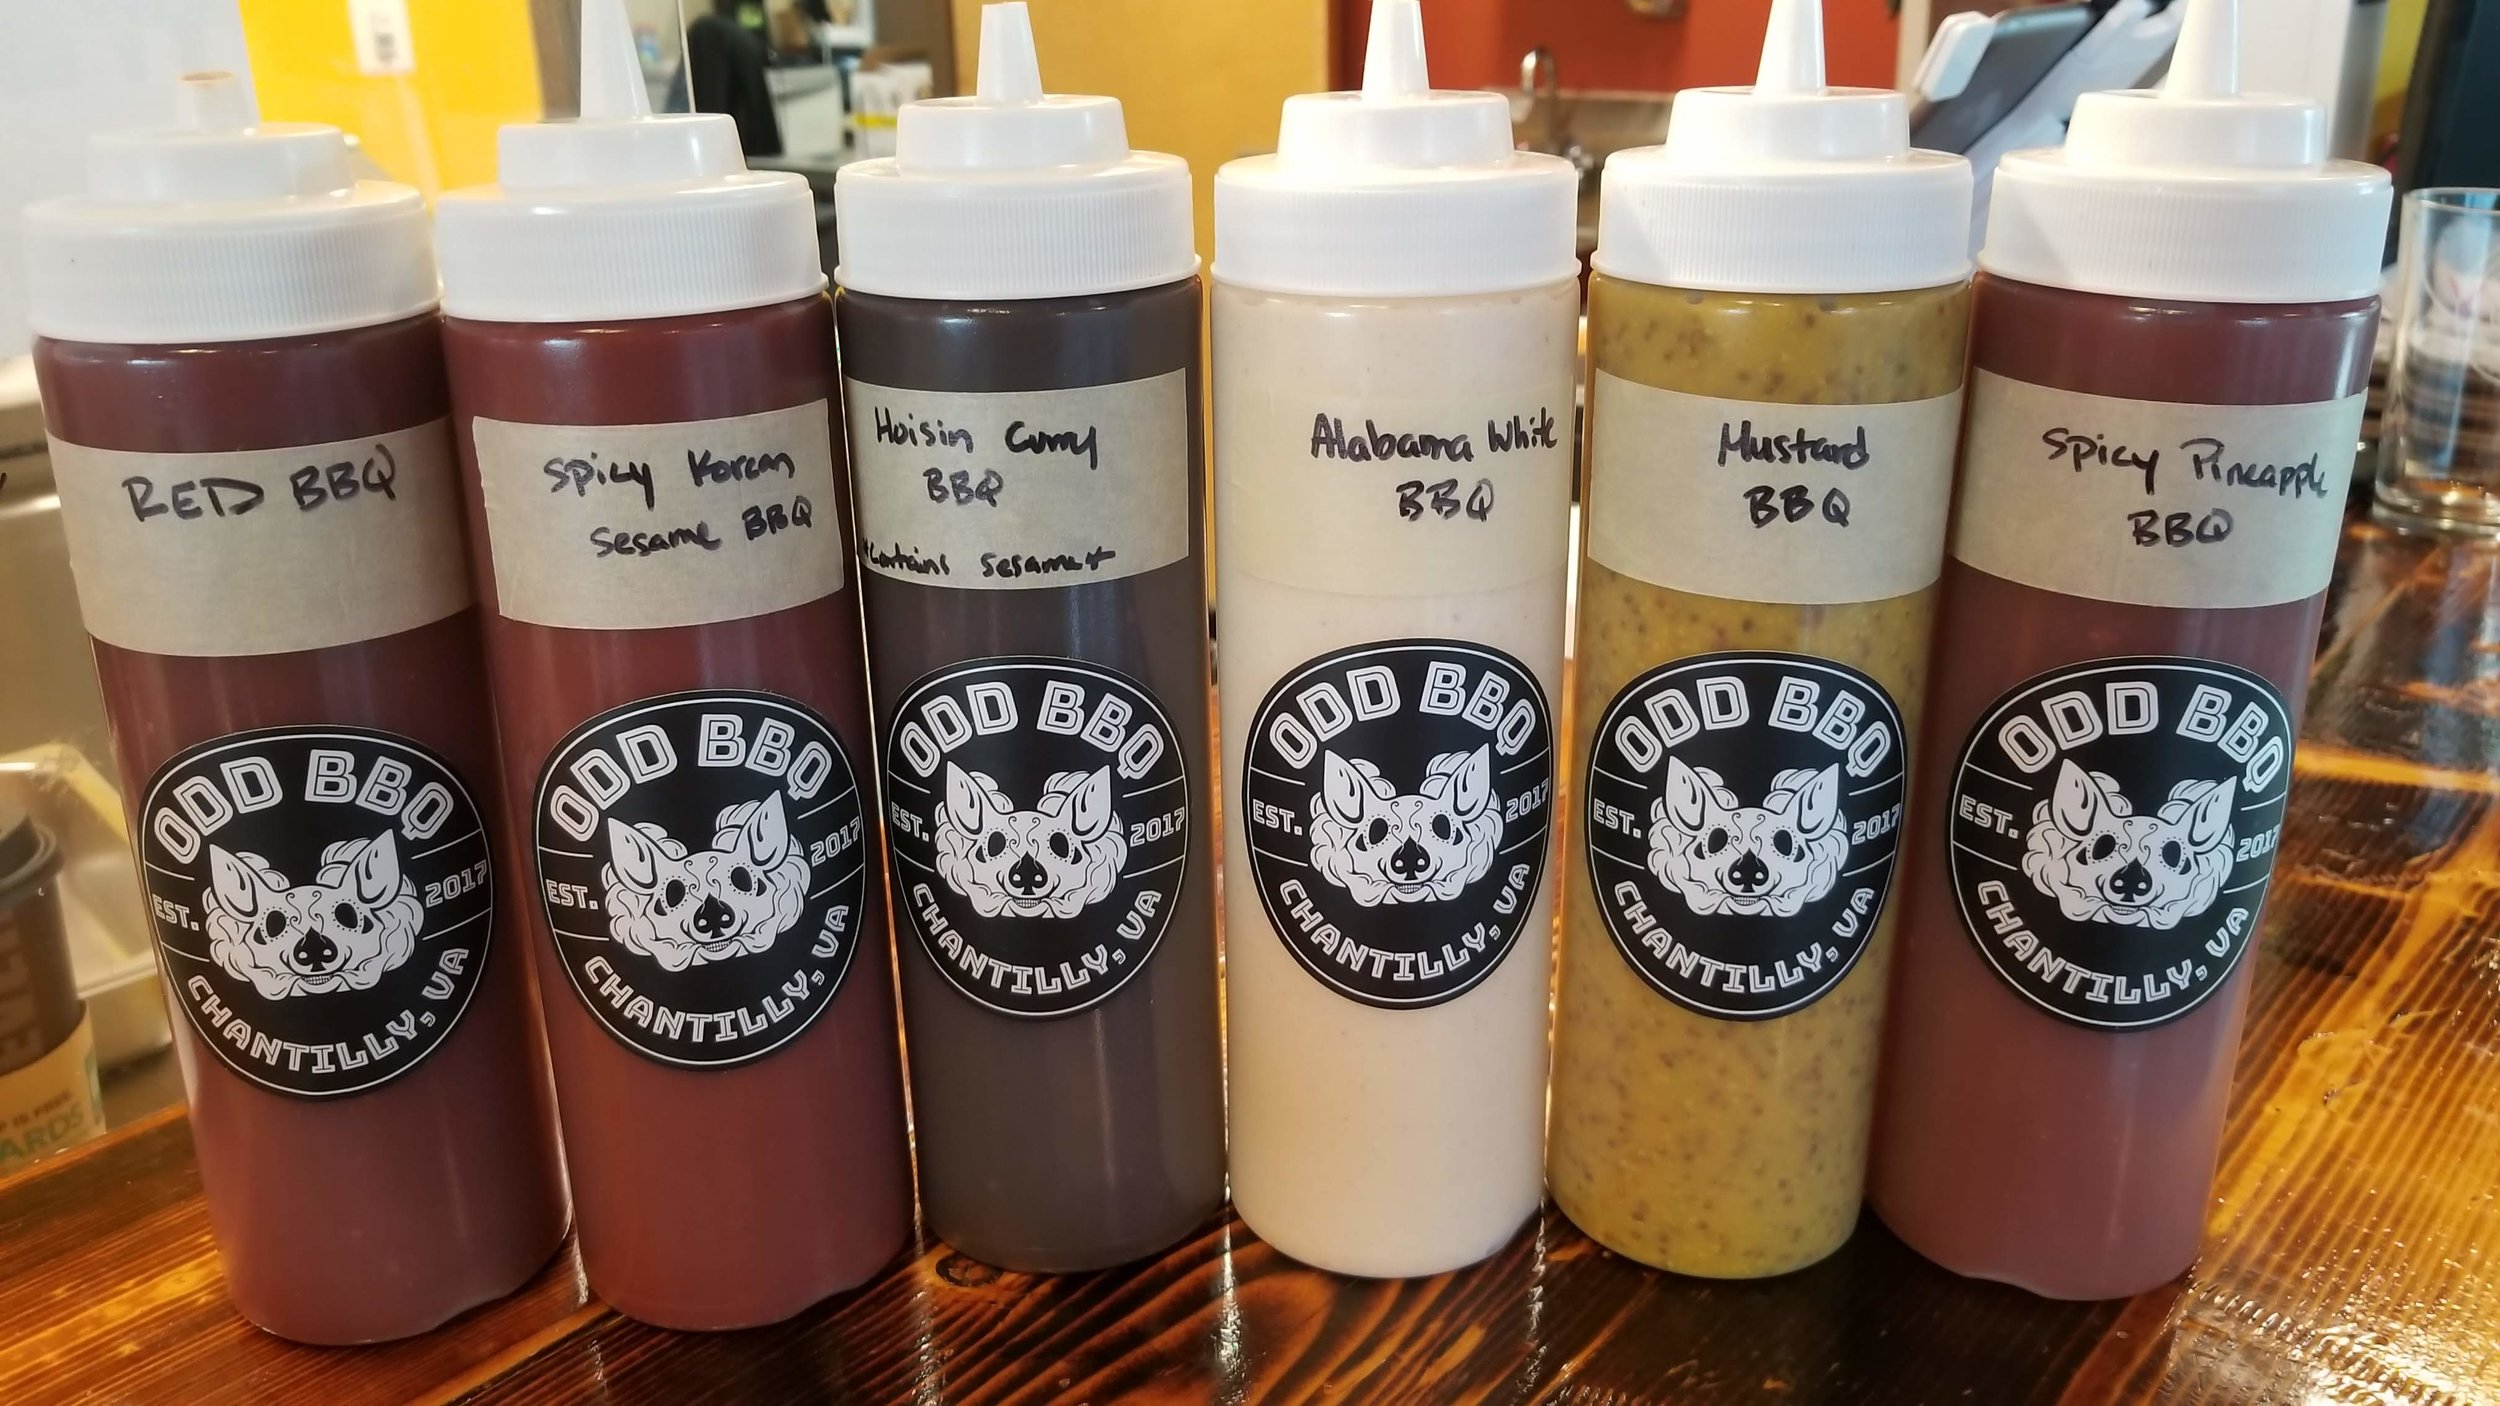 About our sauces… - We make all of our sauces in-house here is our current offeringsALABAMA WHITE BBQ (Not Spicy)mayo based, less sweet & more tangyRED BBQ (Not Spicy)classic ketchup based, sweet, rich, & tangyMUSTARD BBQ (Not Spicy)whole grain & yellow mustard, tangy & sweetVINEGAR BBQ (Mild Spice)carolina style, chili flakes & molasses, very tangyHOISIN CURRY (Not Spicy)sweet, savory, soy, light currySPICY KOREAN SESAMEkorean pepper paste, brown sugar, sesame oil,SPICY PINEAPPLEsweet & spicy, habaneros & soy sauceSMOKERS ON FIRE!arbol chili hot sauce, vinegary